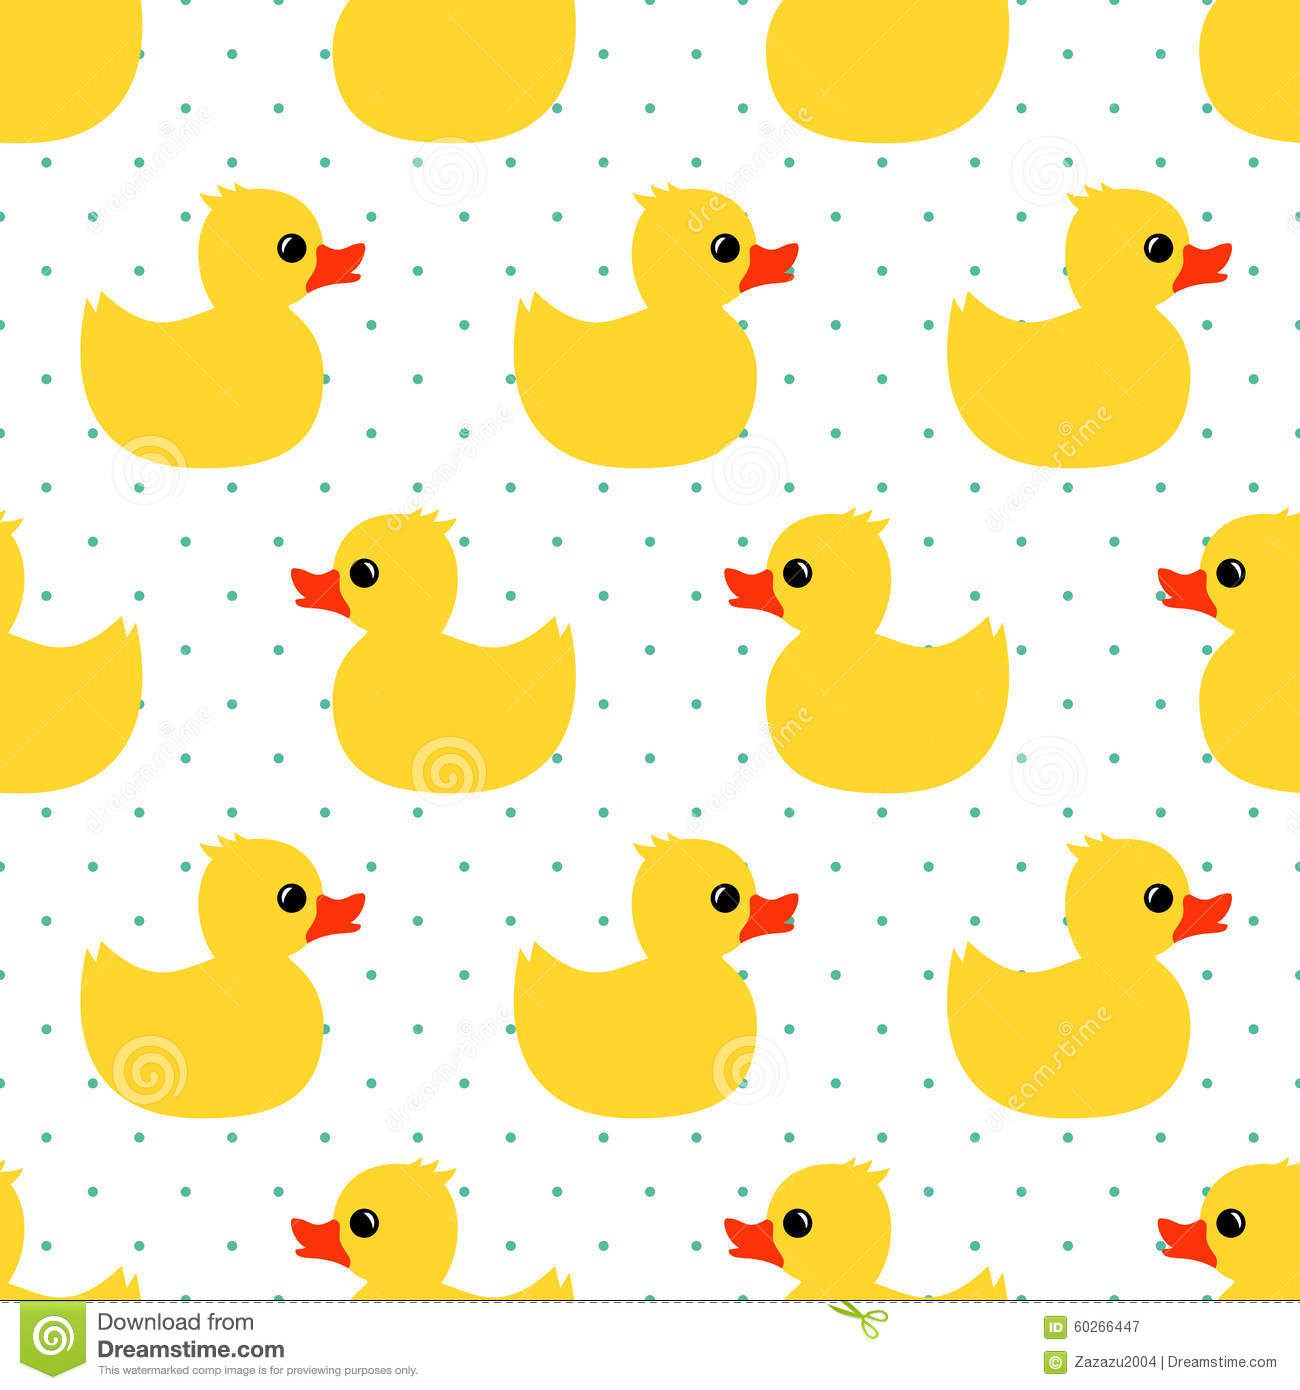 Cute Seamless Pattern With Yellow Rubber Duck On Polka